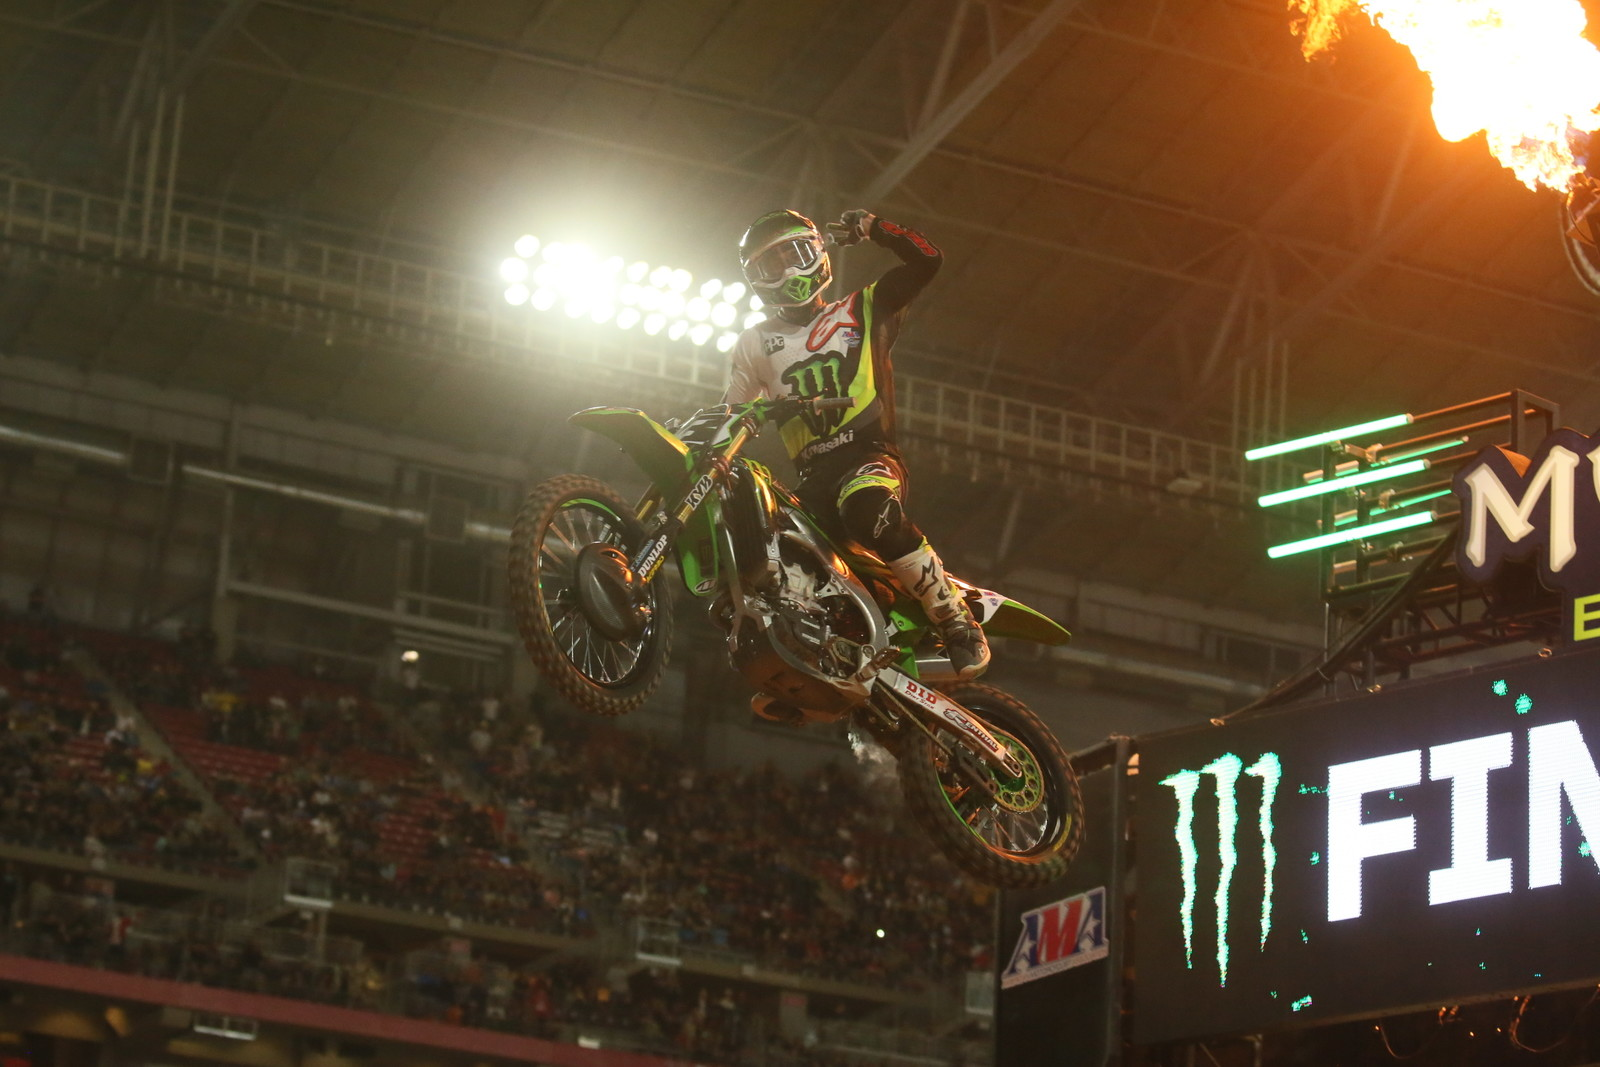 Eli Tomac took his second win of the season tonight.